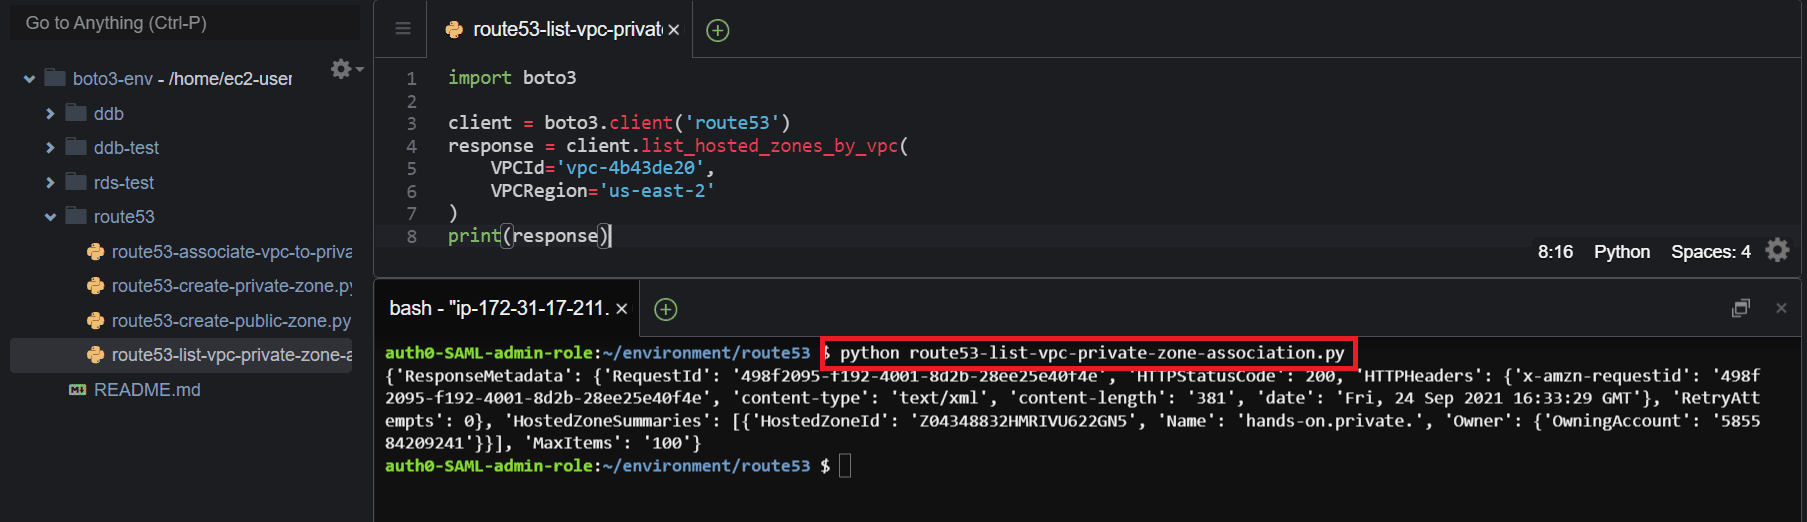 Listing private hosted zones attached to a VPC